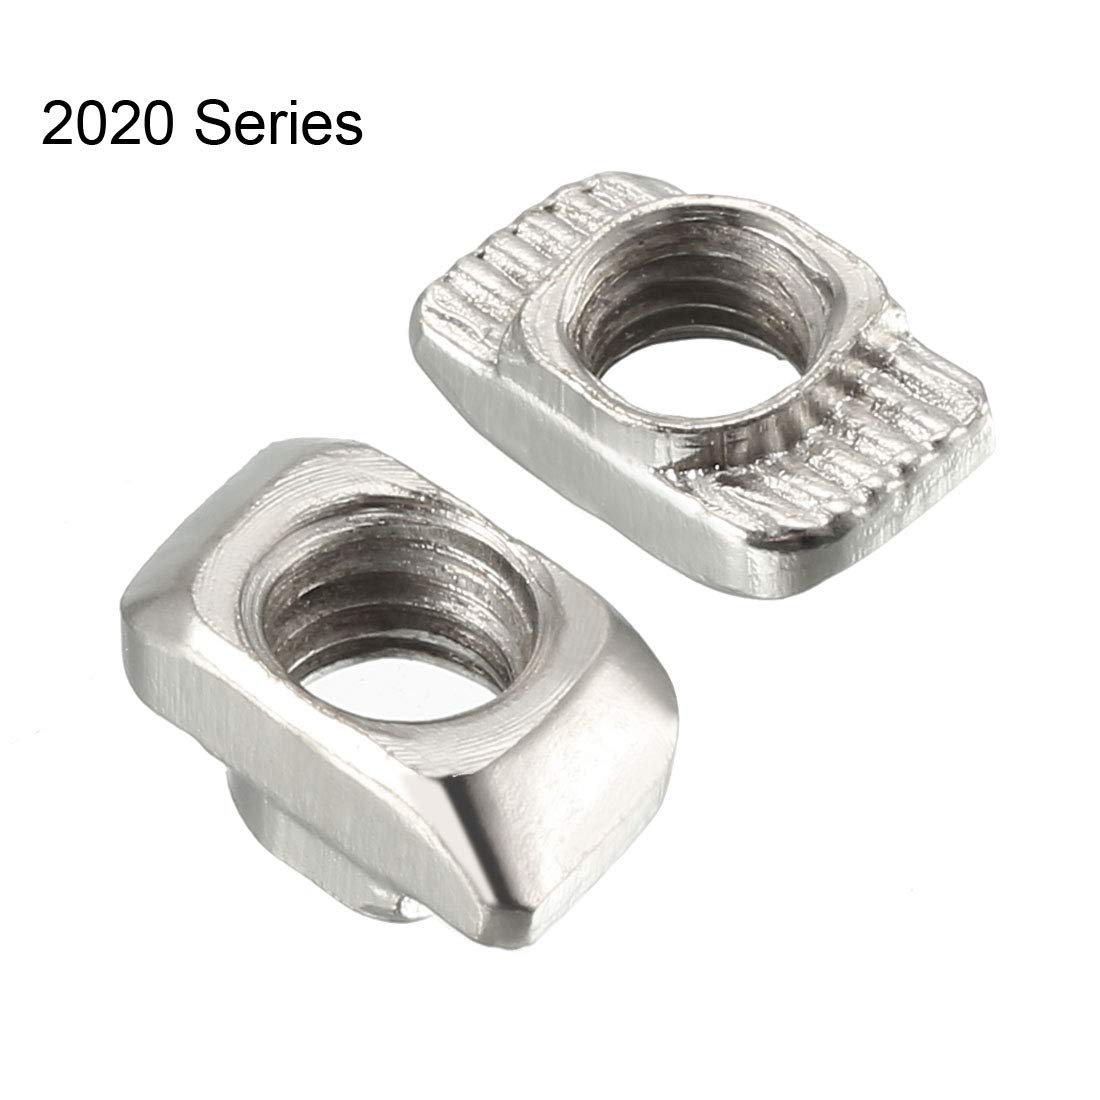 M4 Half Round Roll in T-Nut for 4040 Series Aluminum Extrusion Profile uxcell Sliding T Slot Nuts Carbon Steel Nickel-Plated Pack of 10